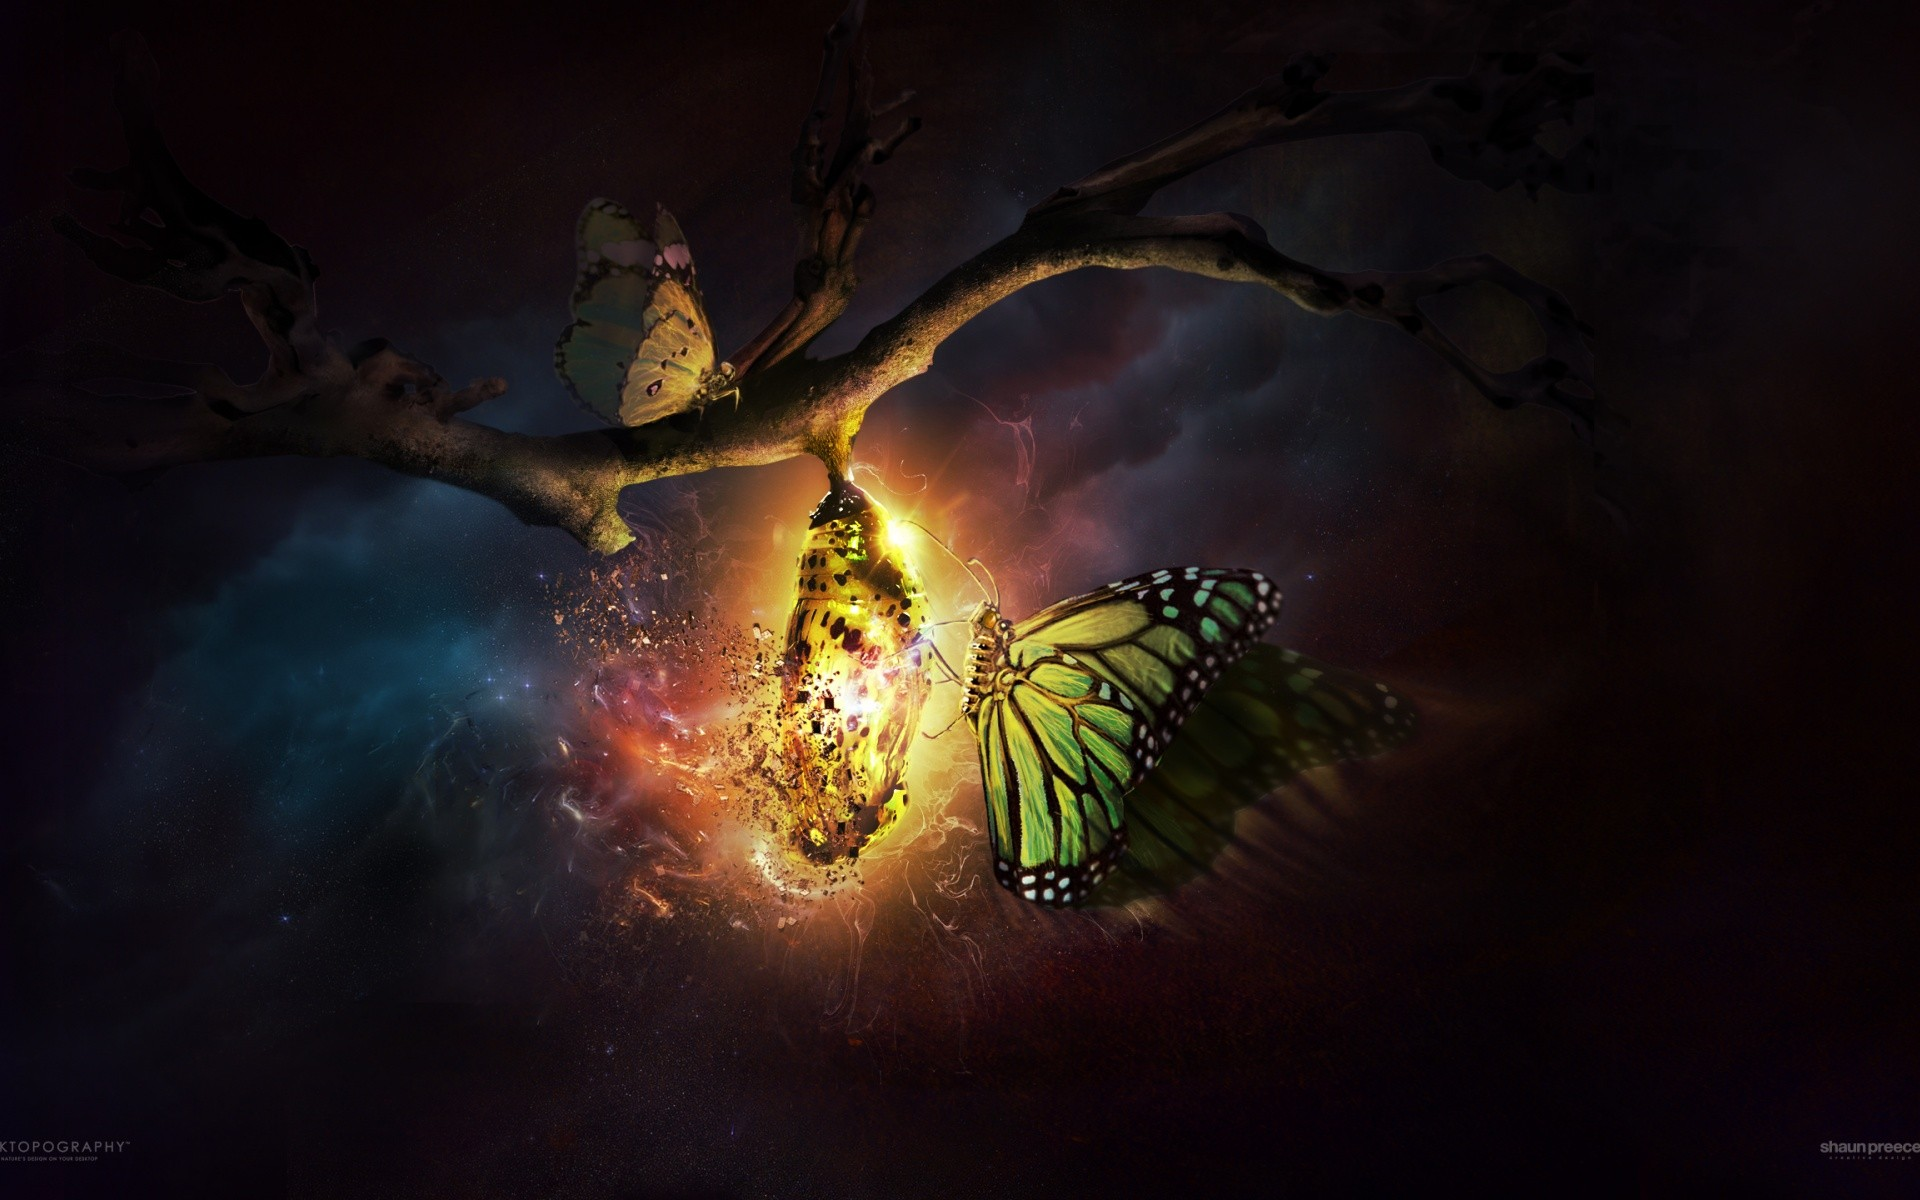 Desktopography Butterfly Cocoon Night Nature Cgi